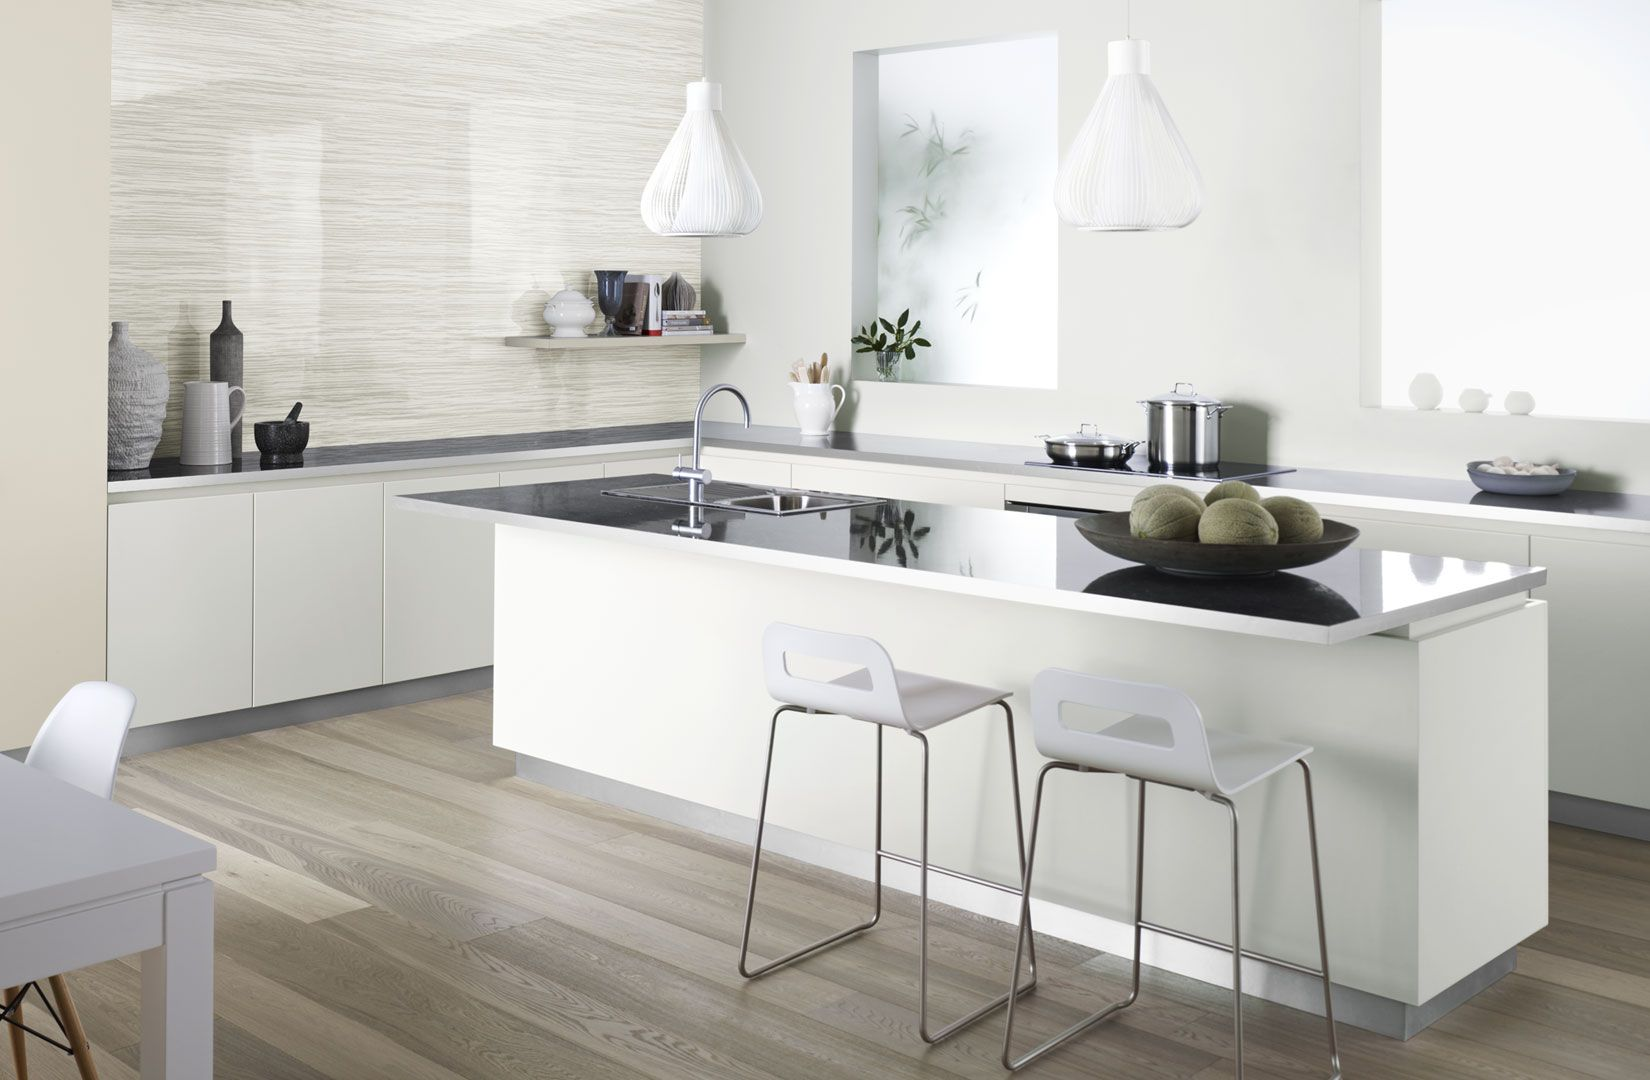 White Kitchen Black Benchtop diamond gloss benchtop with brushed metal edging and brushed